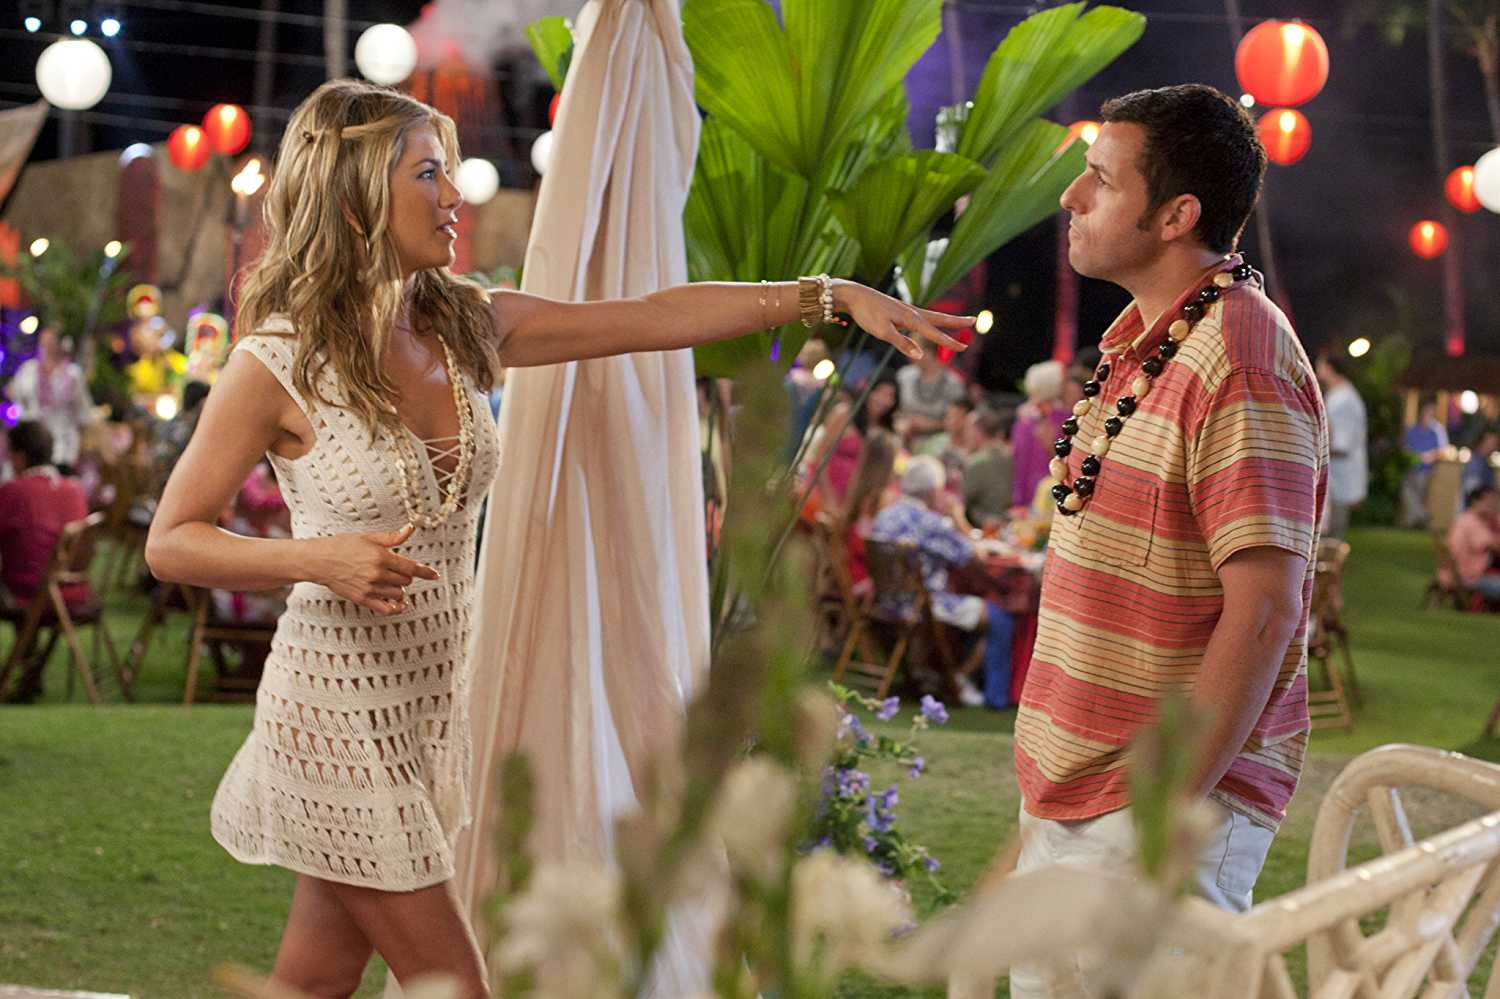 Aniston and Sandler appeared together in 'Just Go With It' (Source: IMDb)